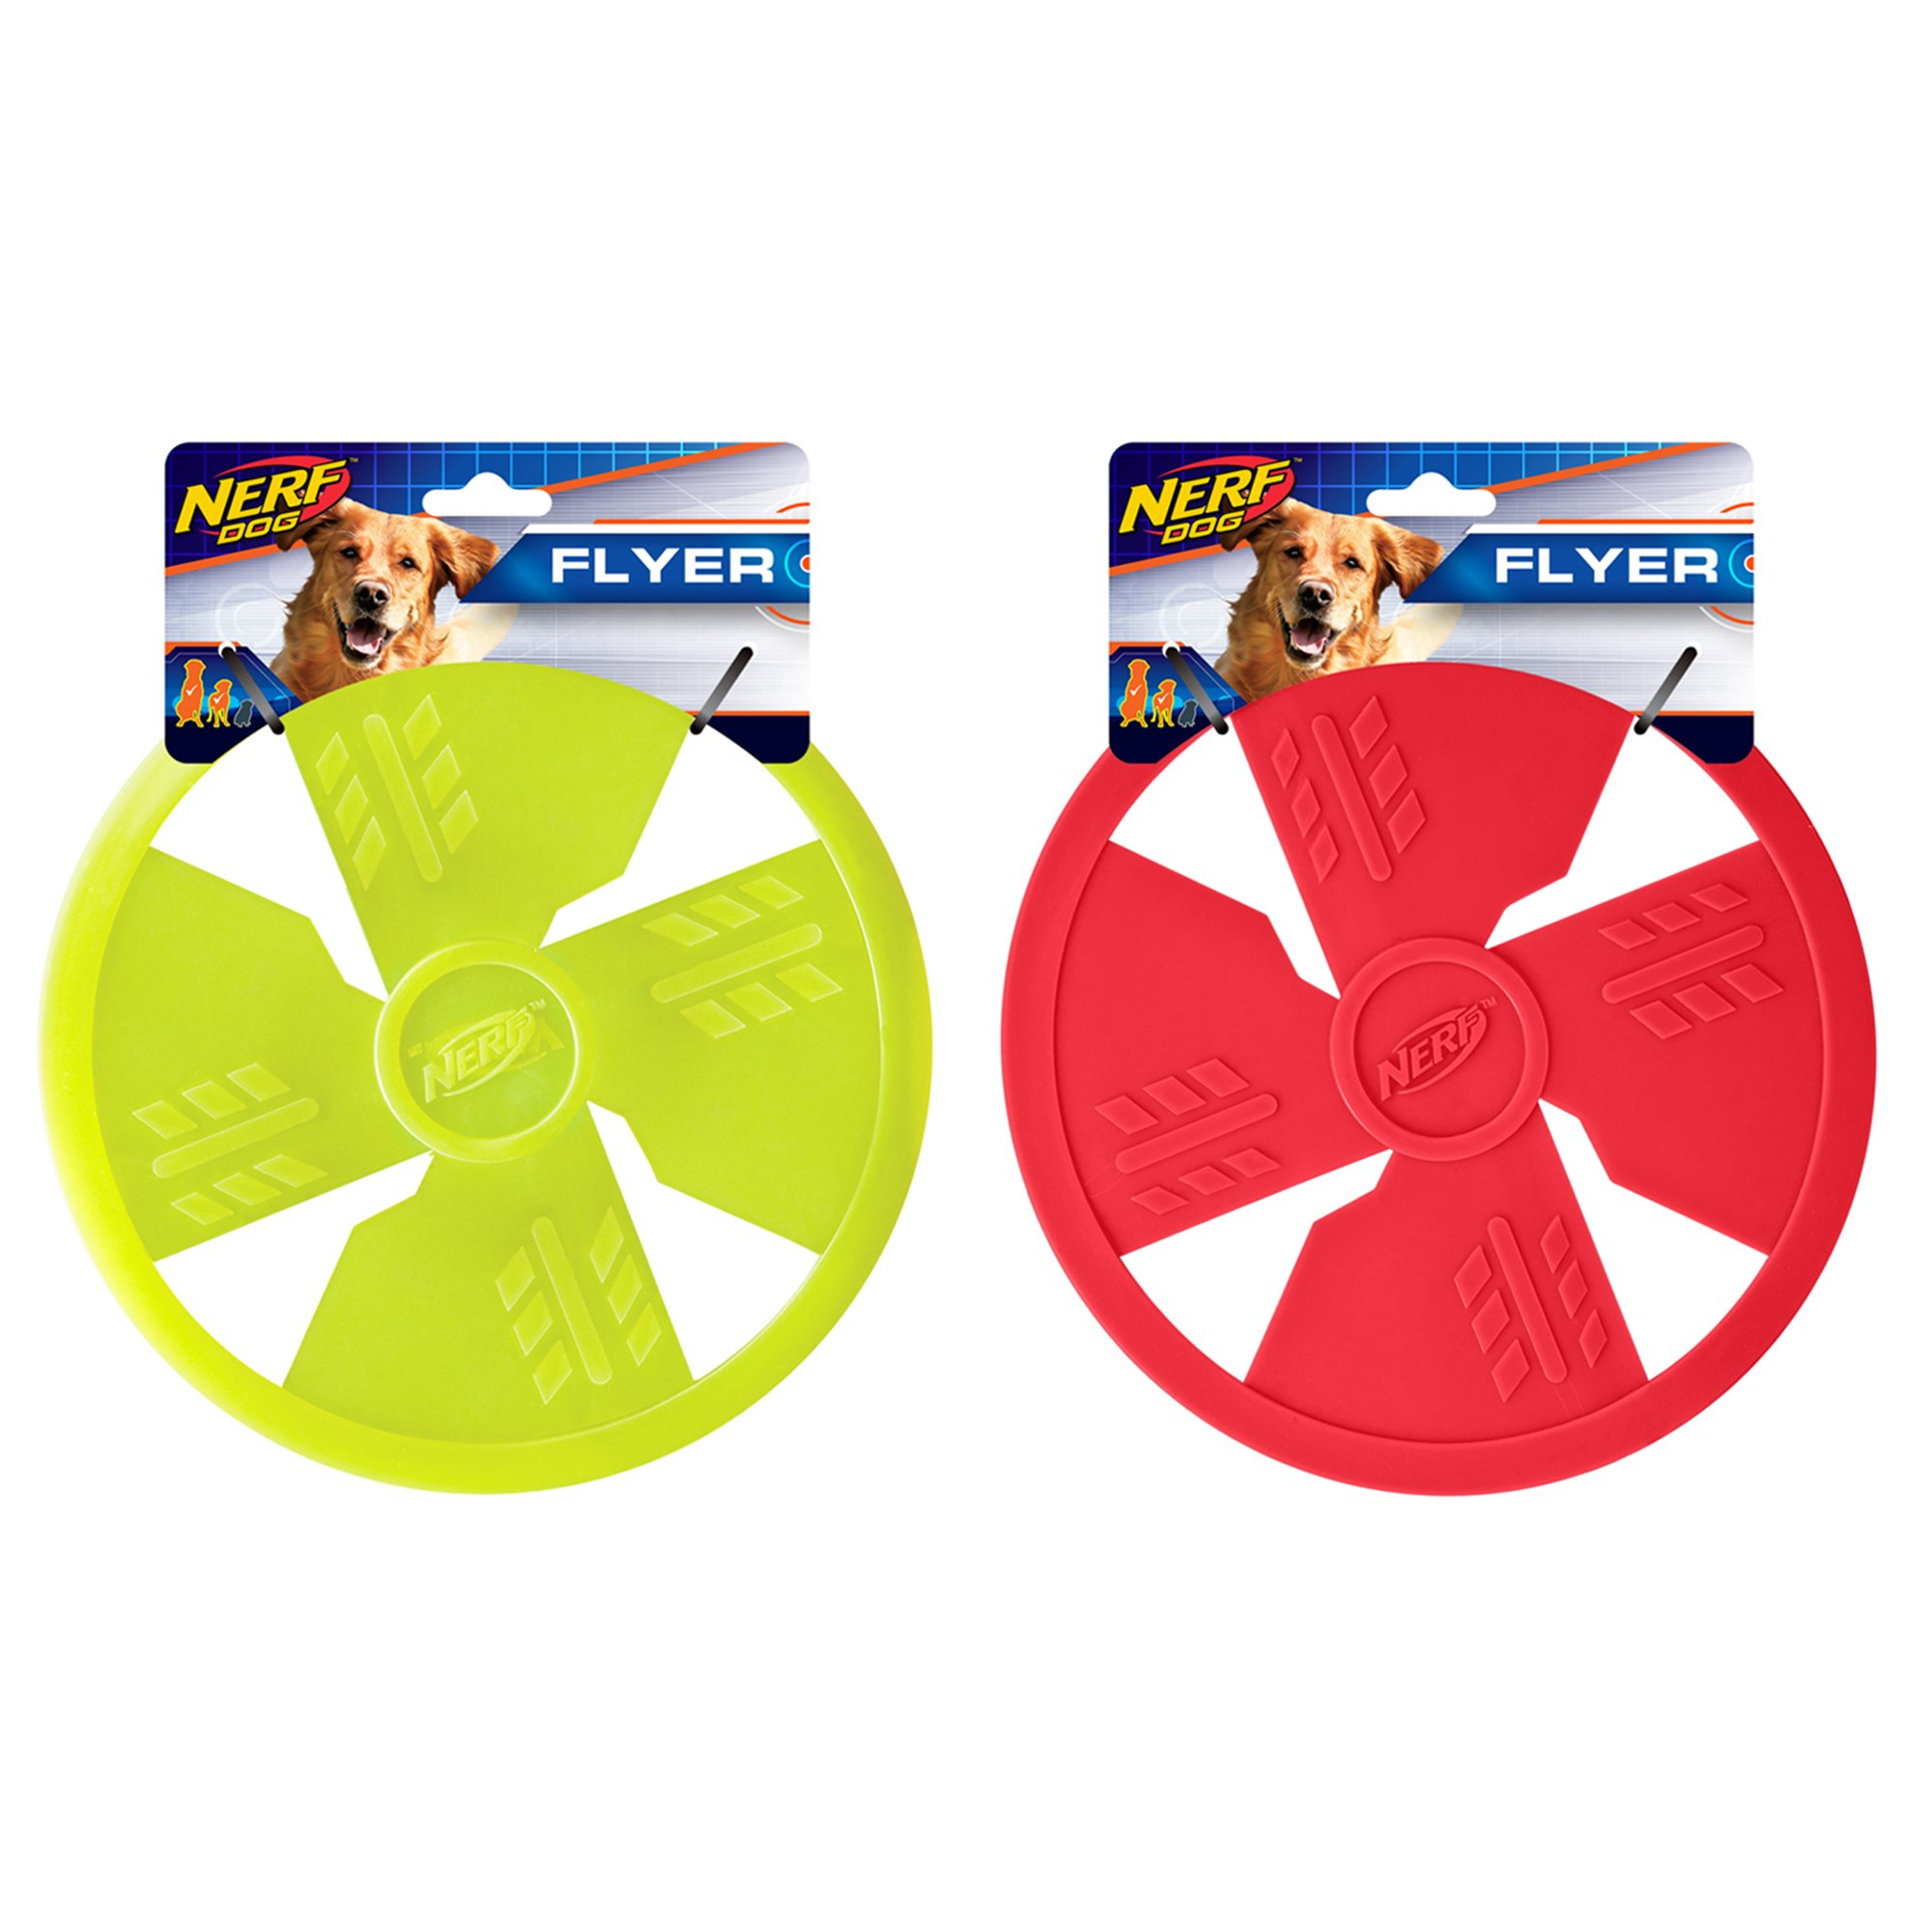 Nerf Dog TPR Float Flyer Flying Disc Dog Toy, Large, (2-Pack), Green and Red by Nerf Dog